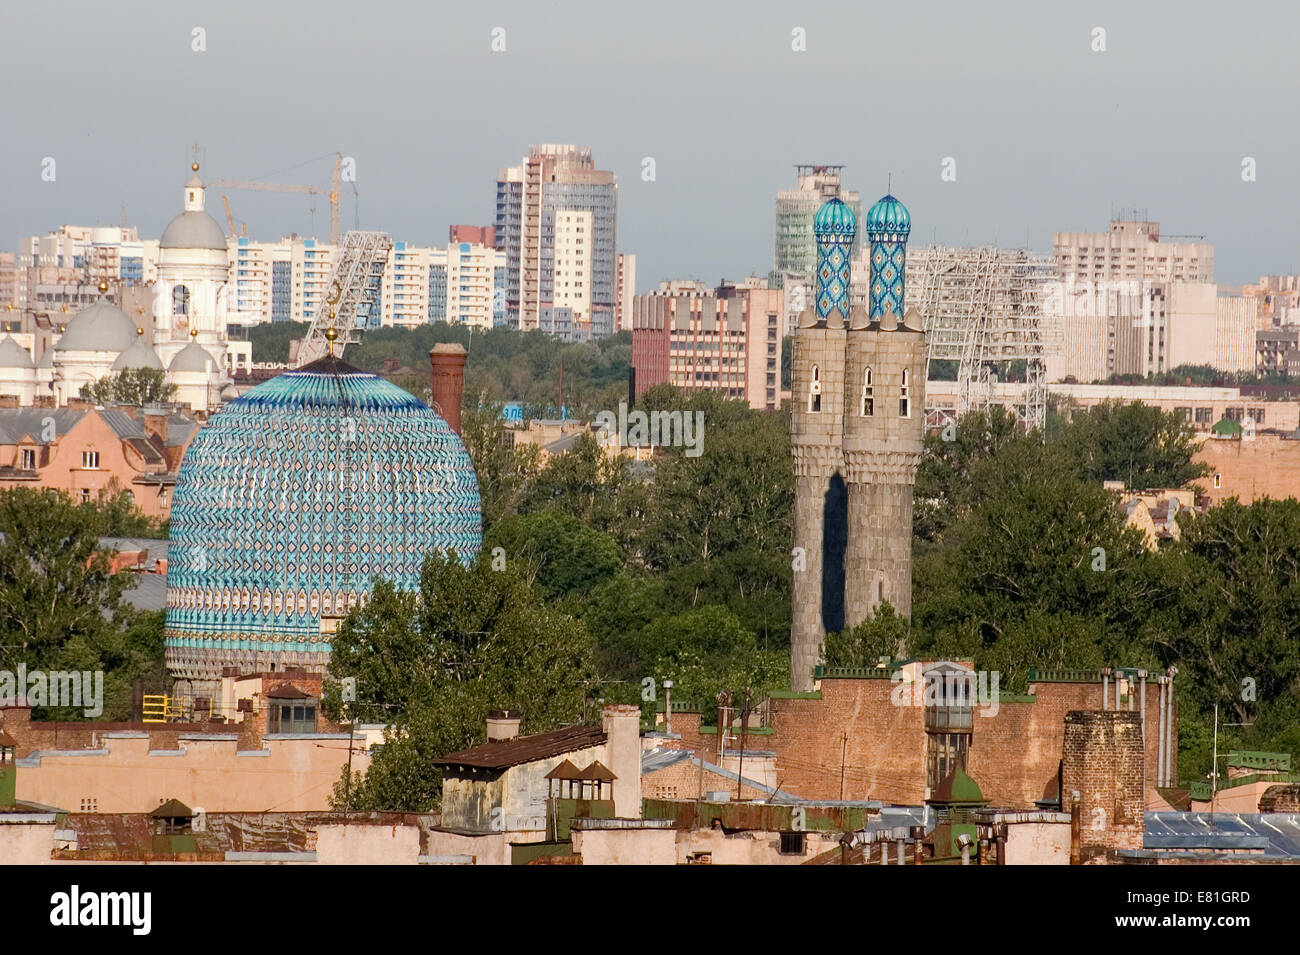 The view on Saint-Petersburg mosque with two minarets. St. Vladimir's Cathedral - Stock Image